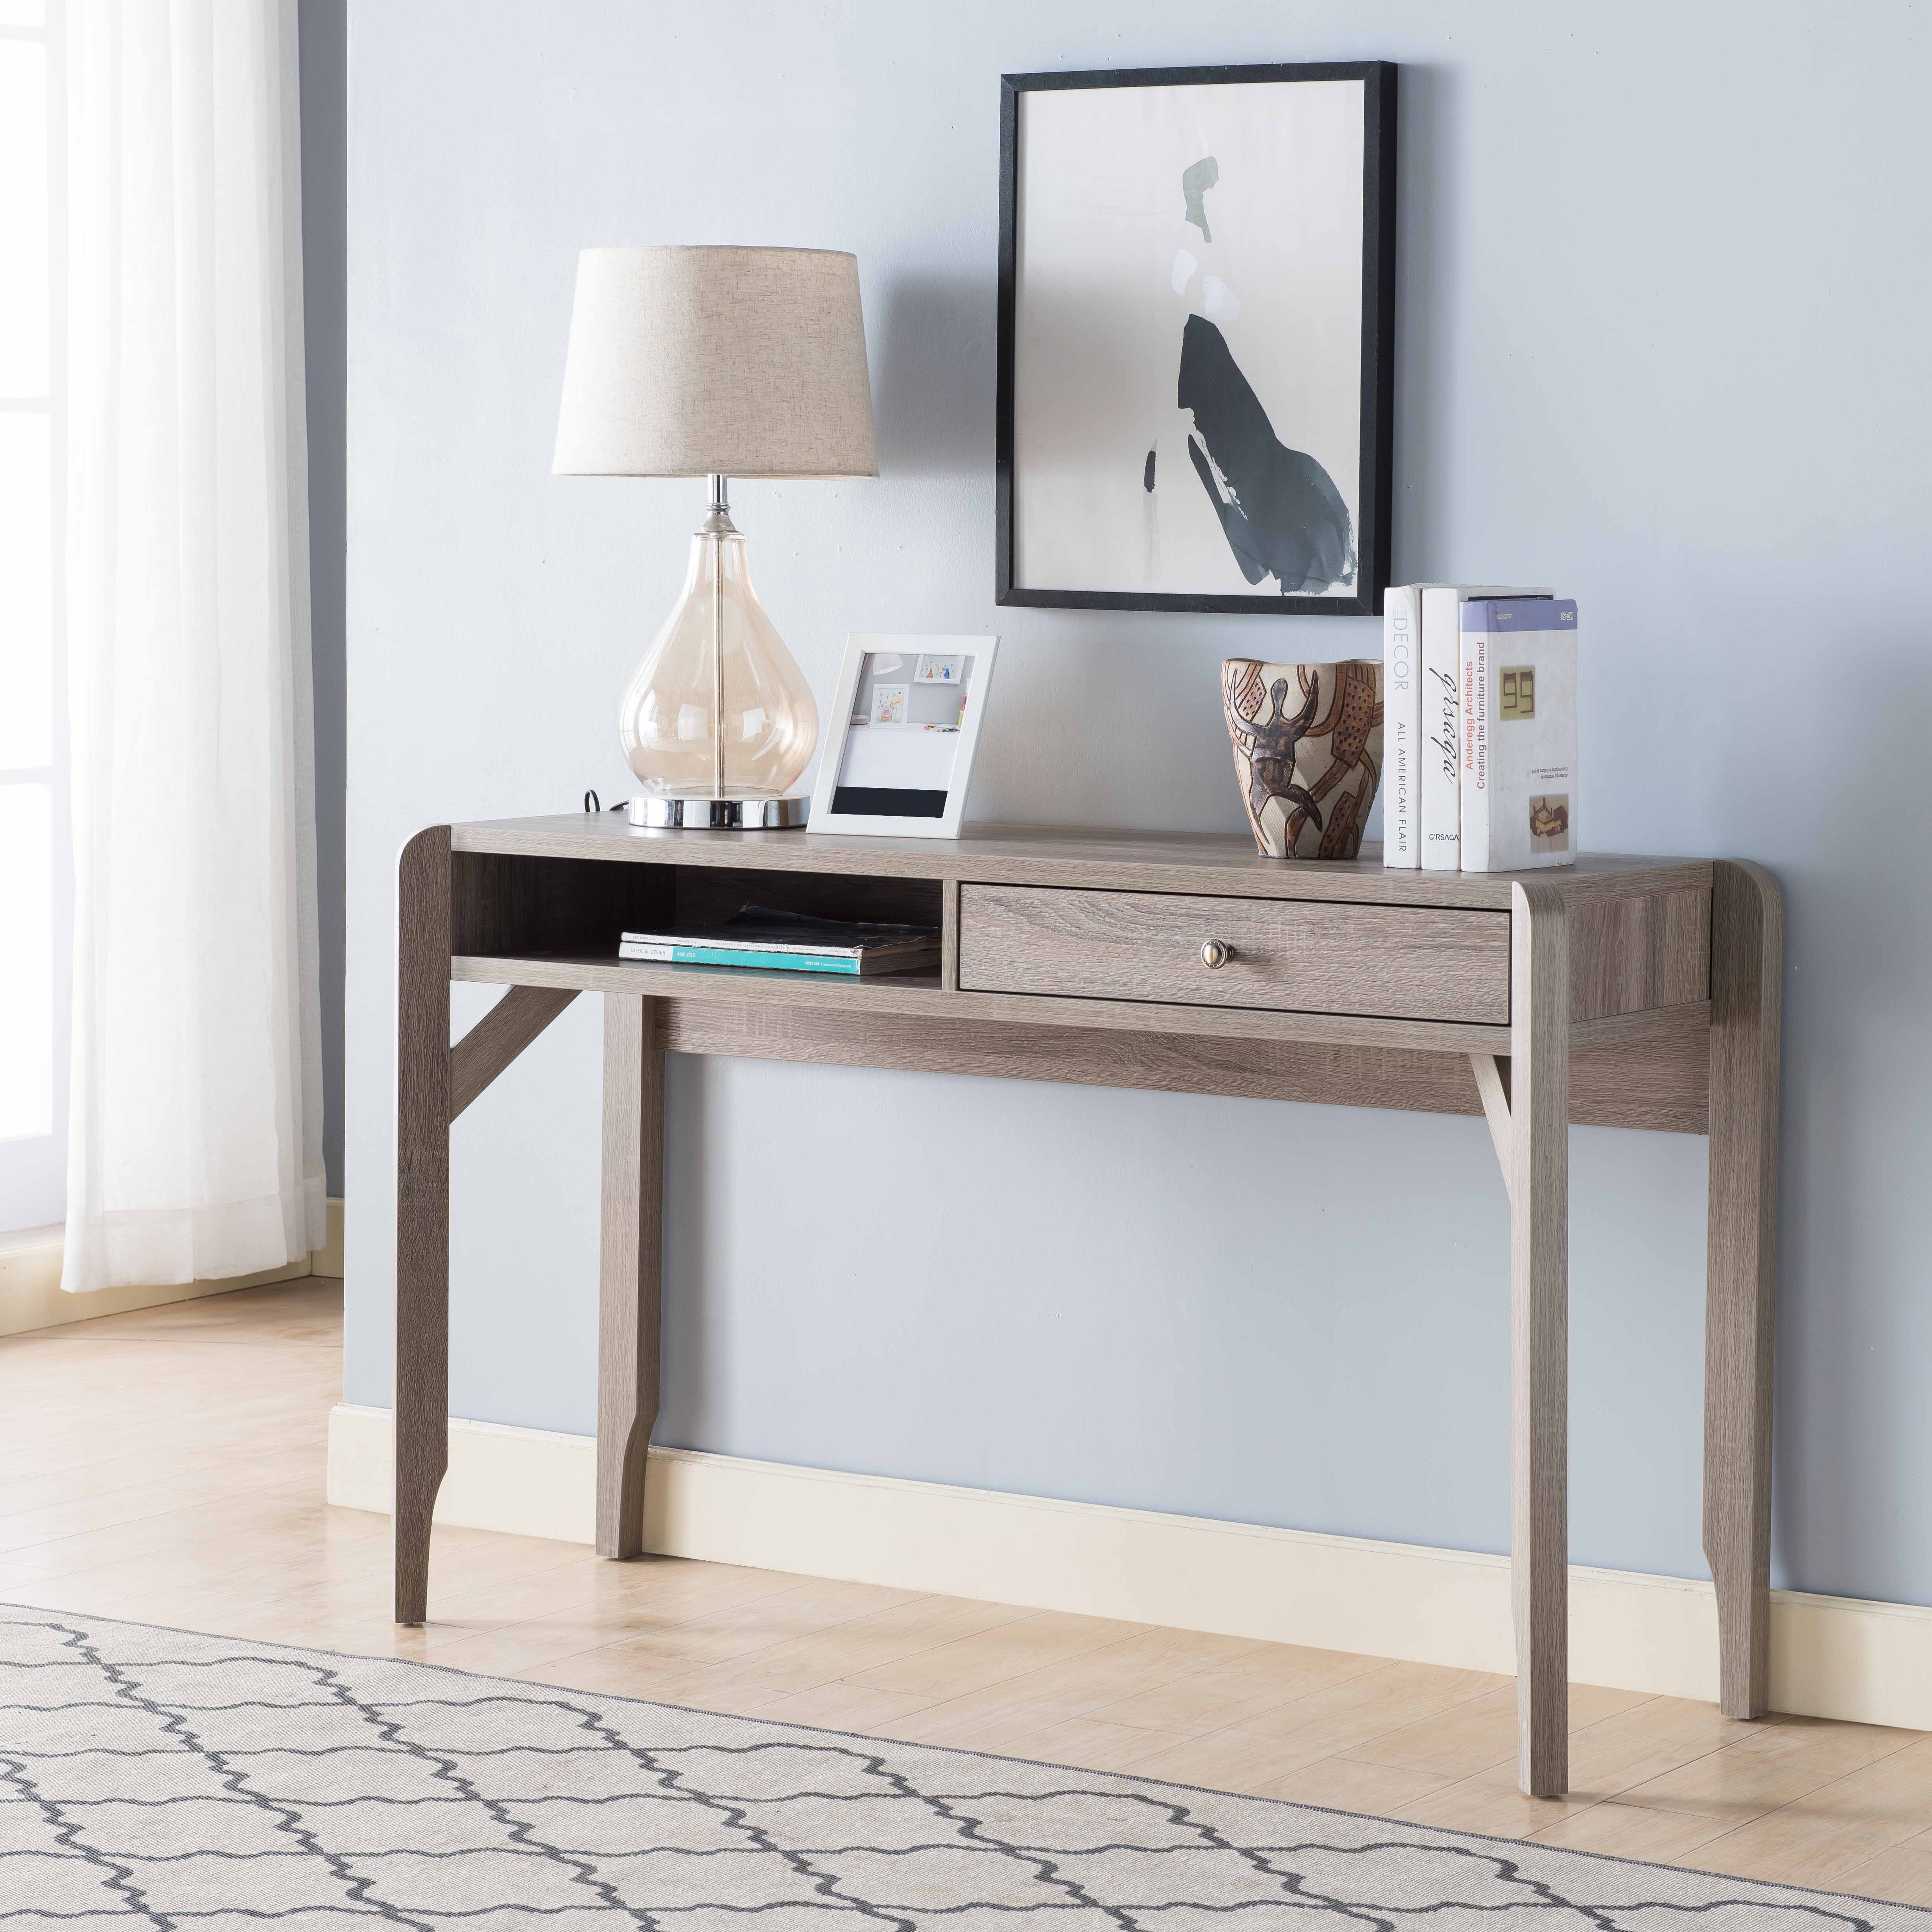 Foundry Select Console Tables You Ll Love In 2021 Wayfair